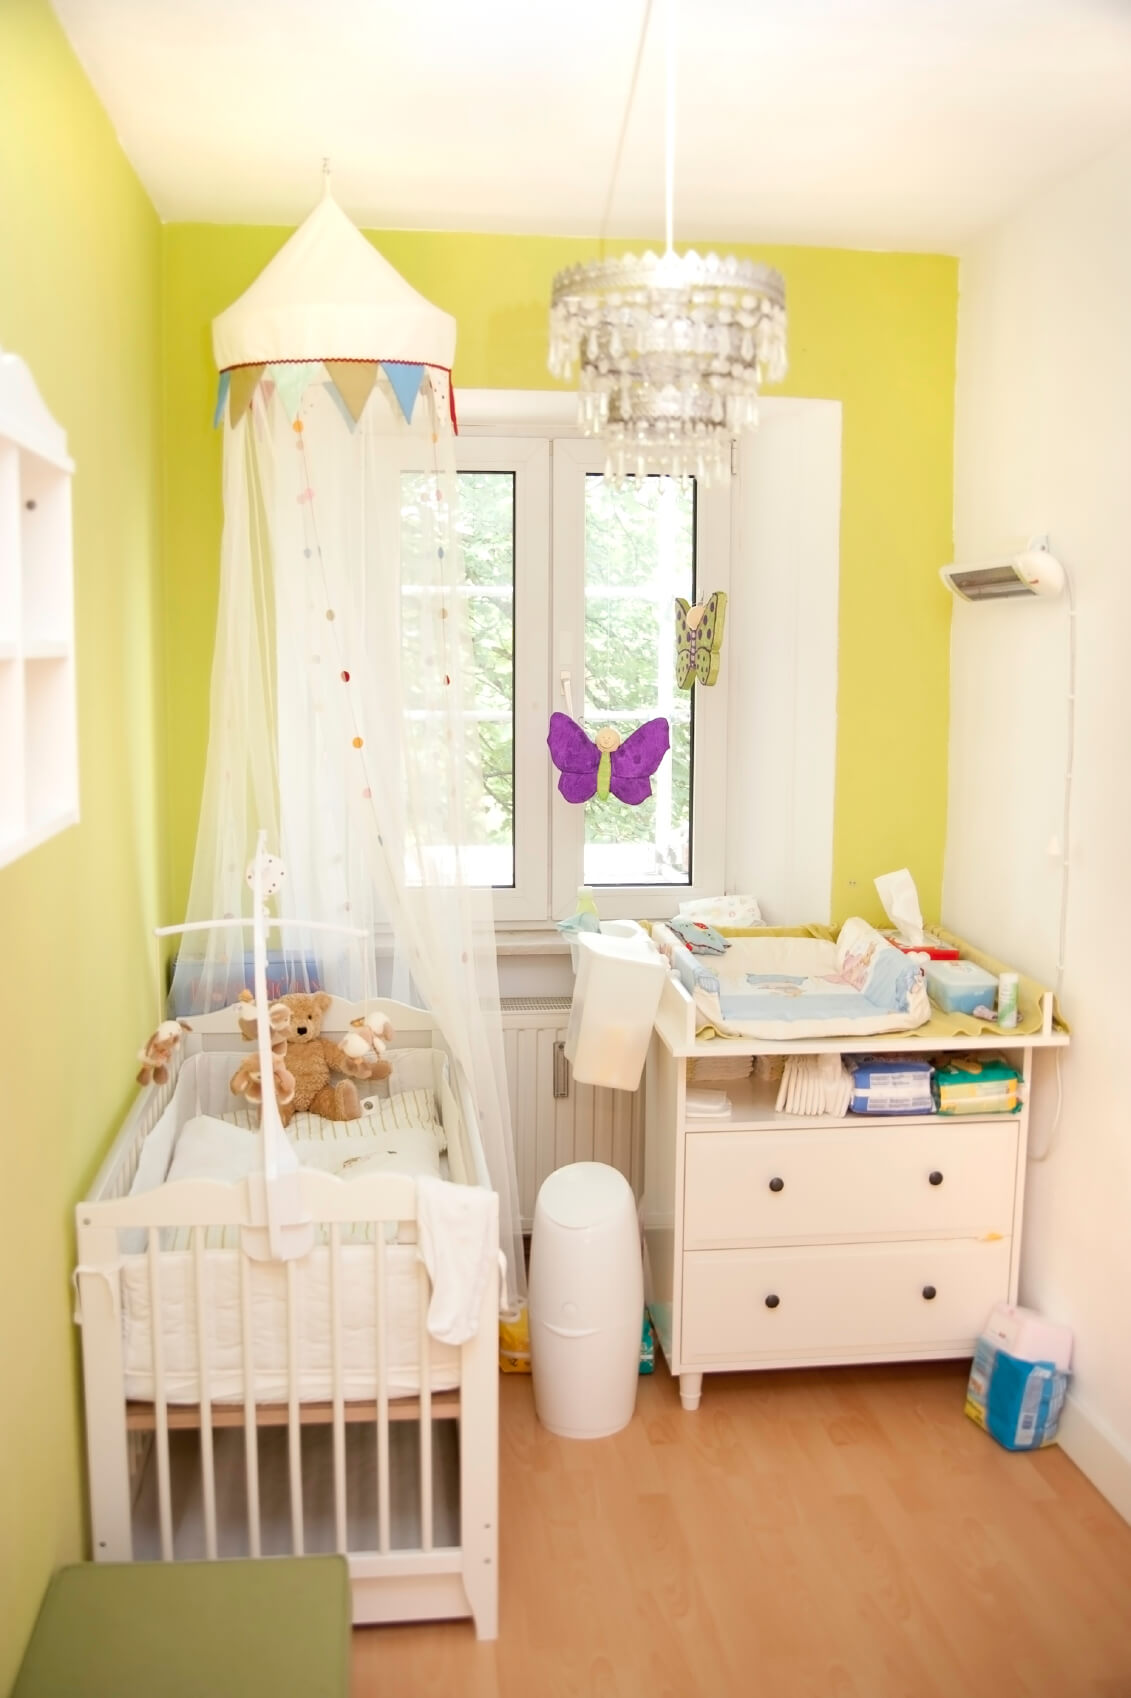 Baby cribs with matching dresser - Cozy Nursery Splashed With Bright Yellow Paint On The Walls Over Natural Hardwood Flooring